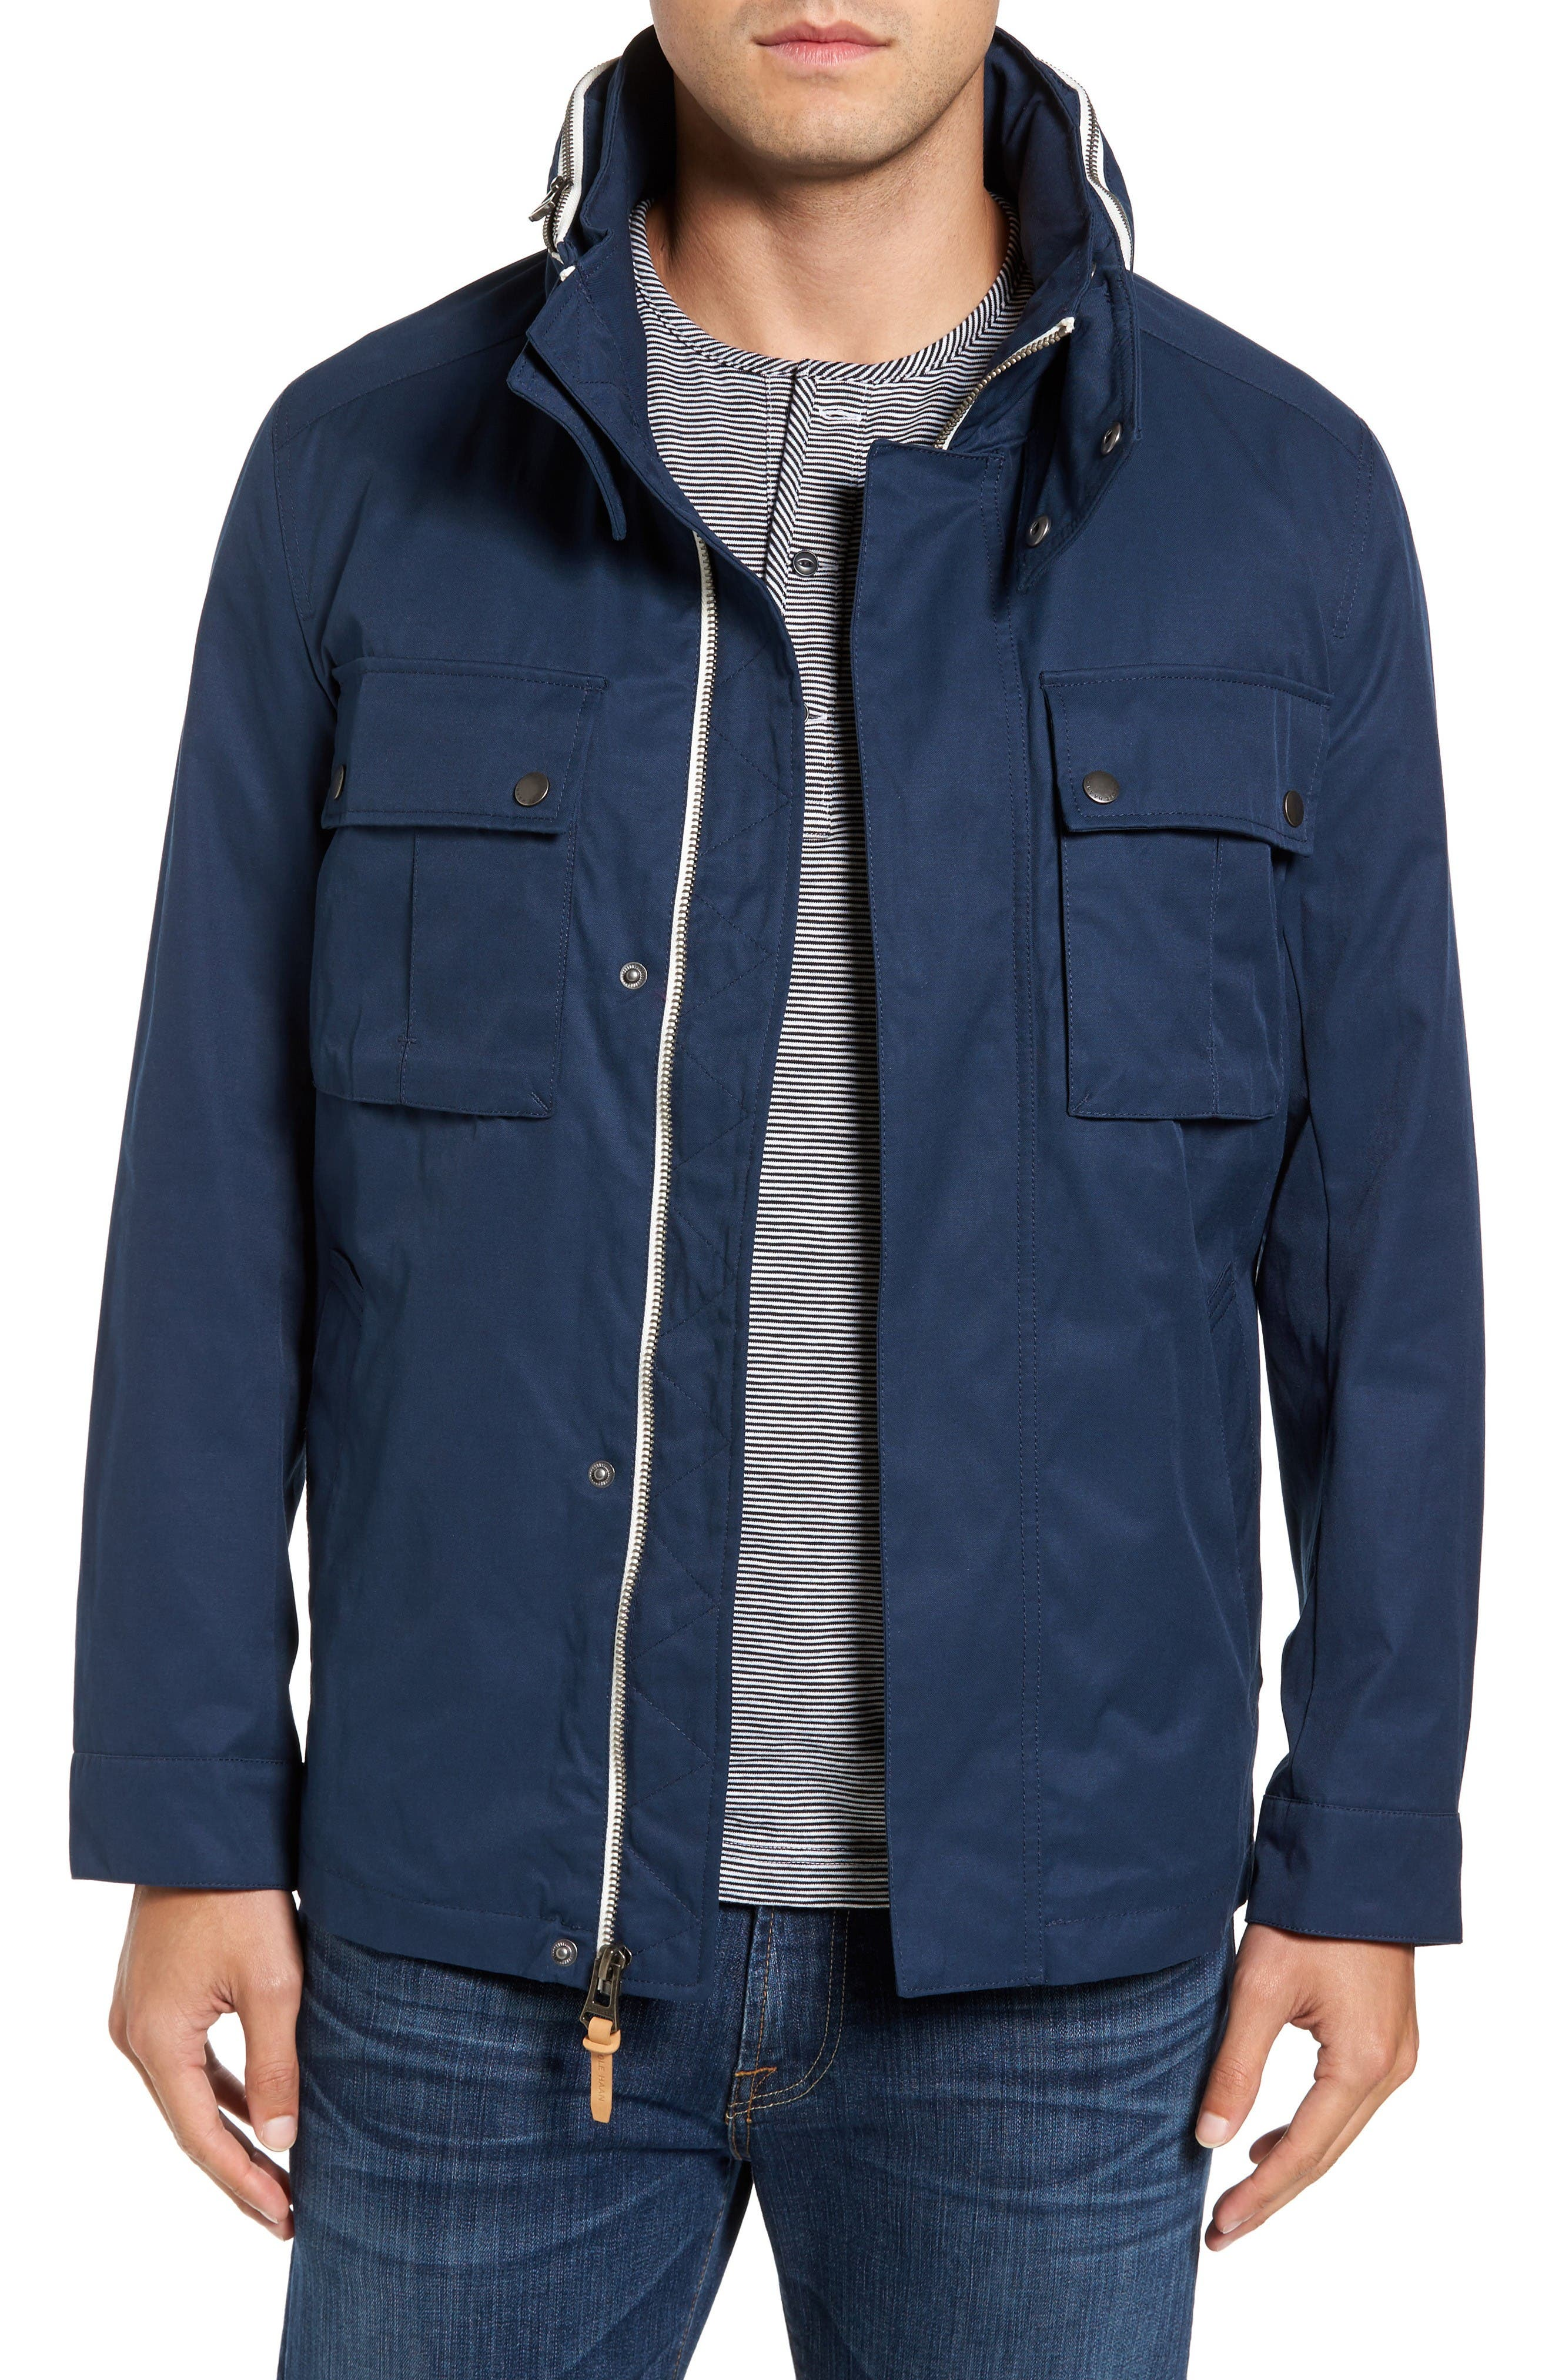 Military Oxford Jacket,                             Main thumbnail 1, color,                             Indigo